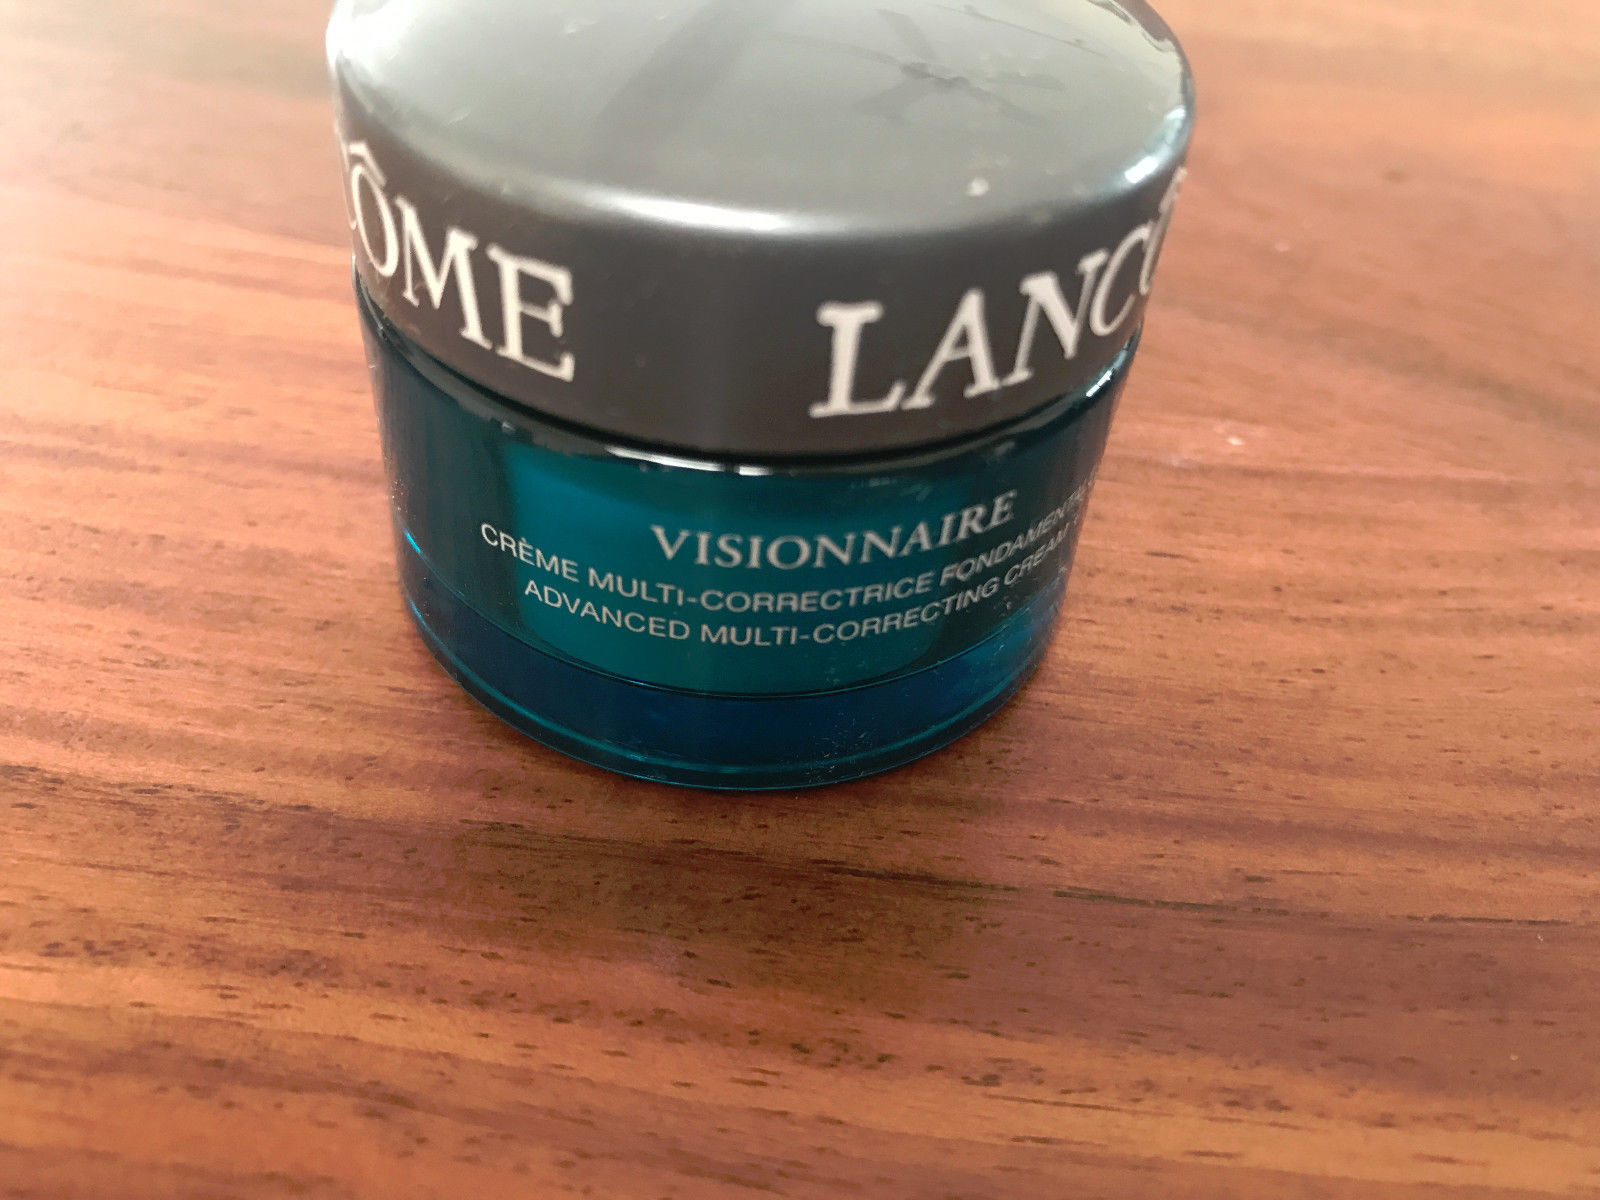 Lancome Visionnaire Day Night Eye Creams and 50 similar items